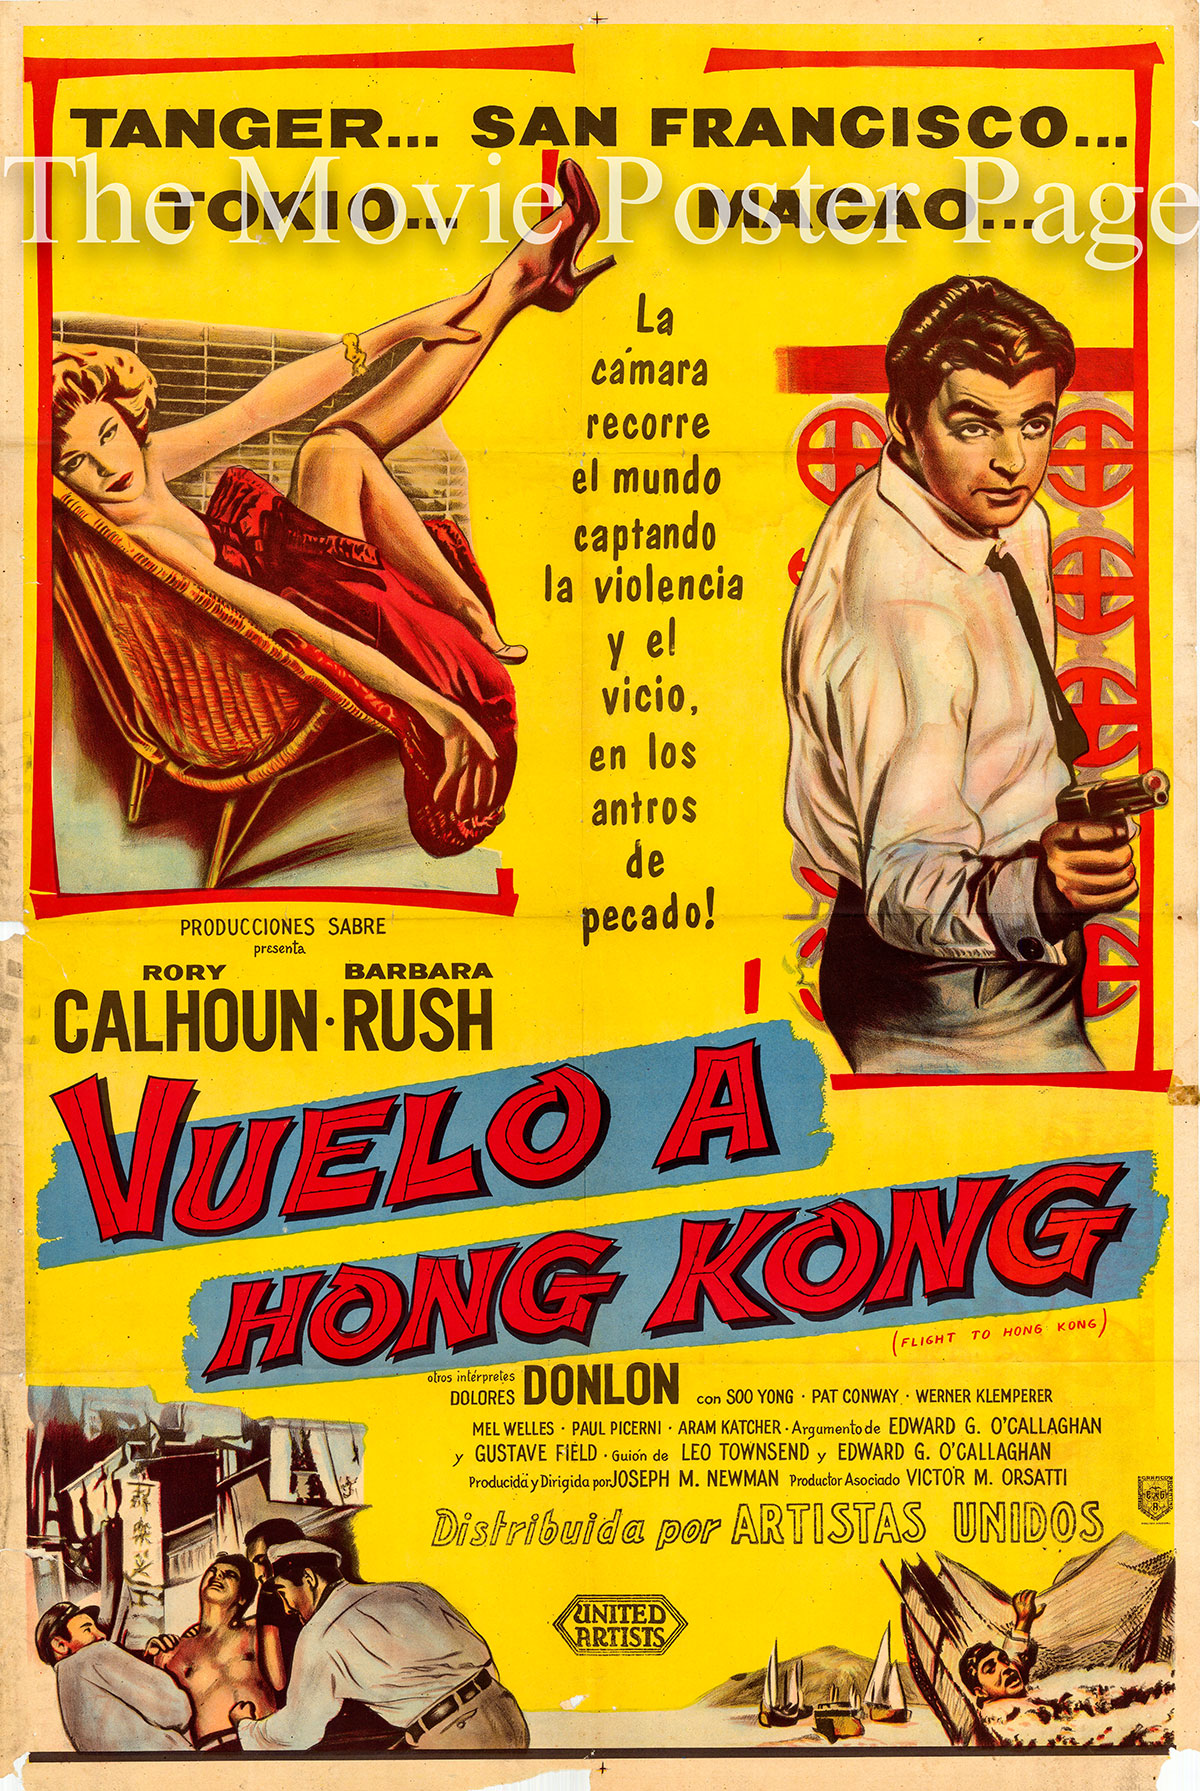 Pictured is an Argentine one-sheet poster for the 1956 Joseph M. Newman film Flight to Hong Kong starring Rory Calhoun as Tony Dumont.